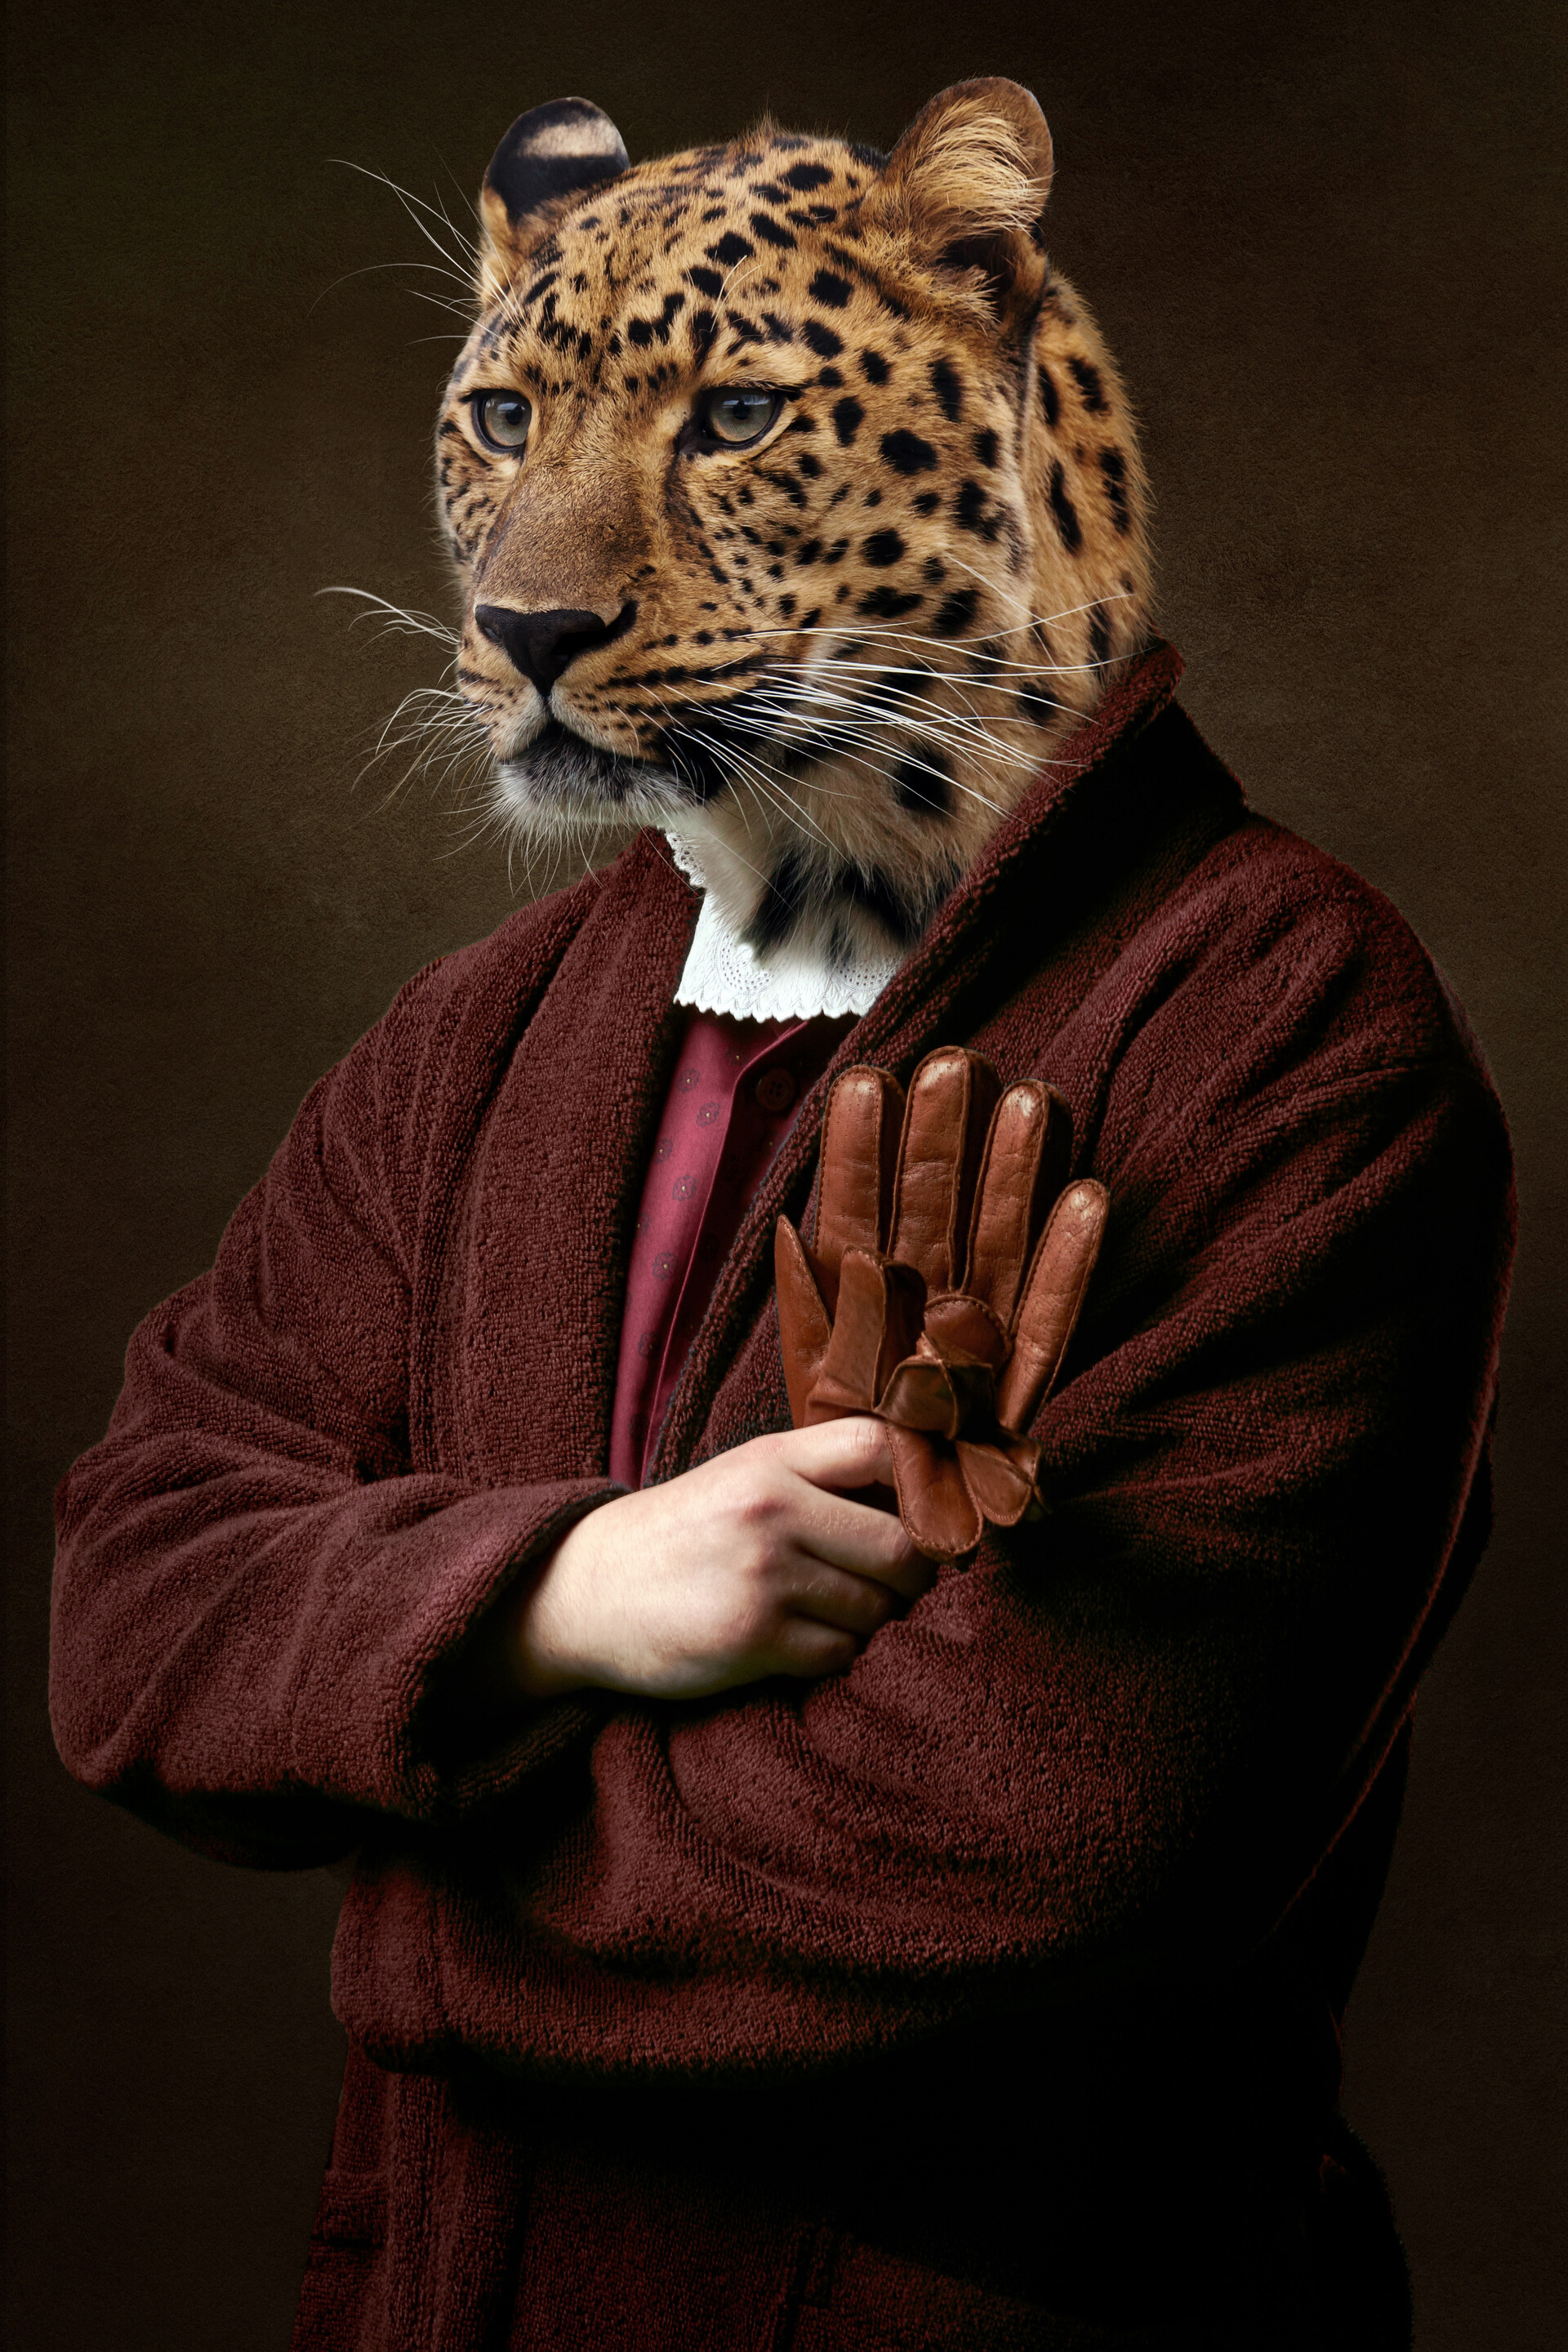 146908 download wallpaper Miscellanea, Miscellaneous, Leopard, Clothing, Animal, Human, Person screensavers and pictures for free